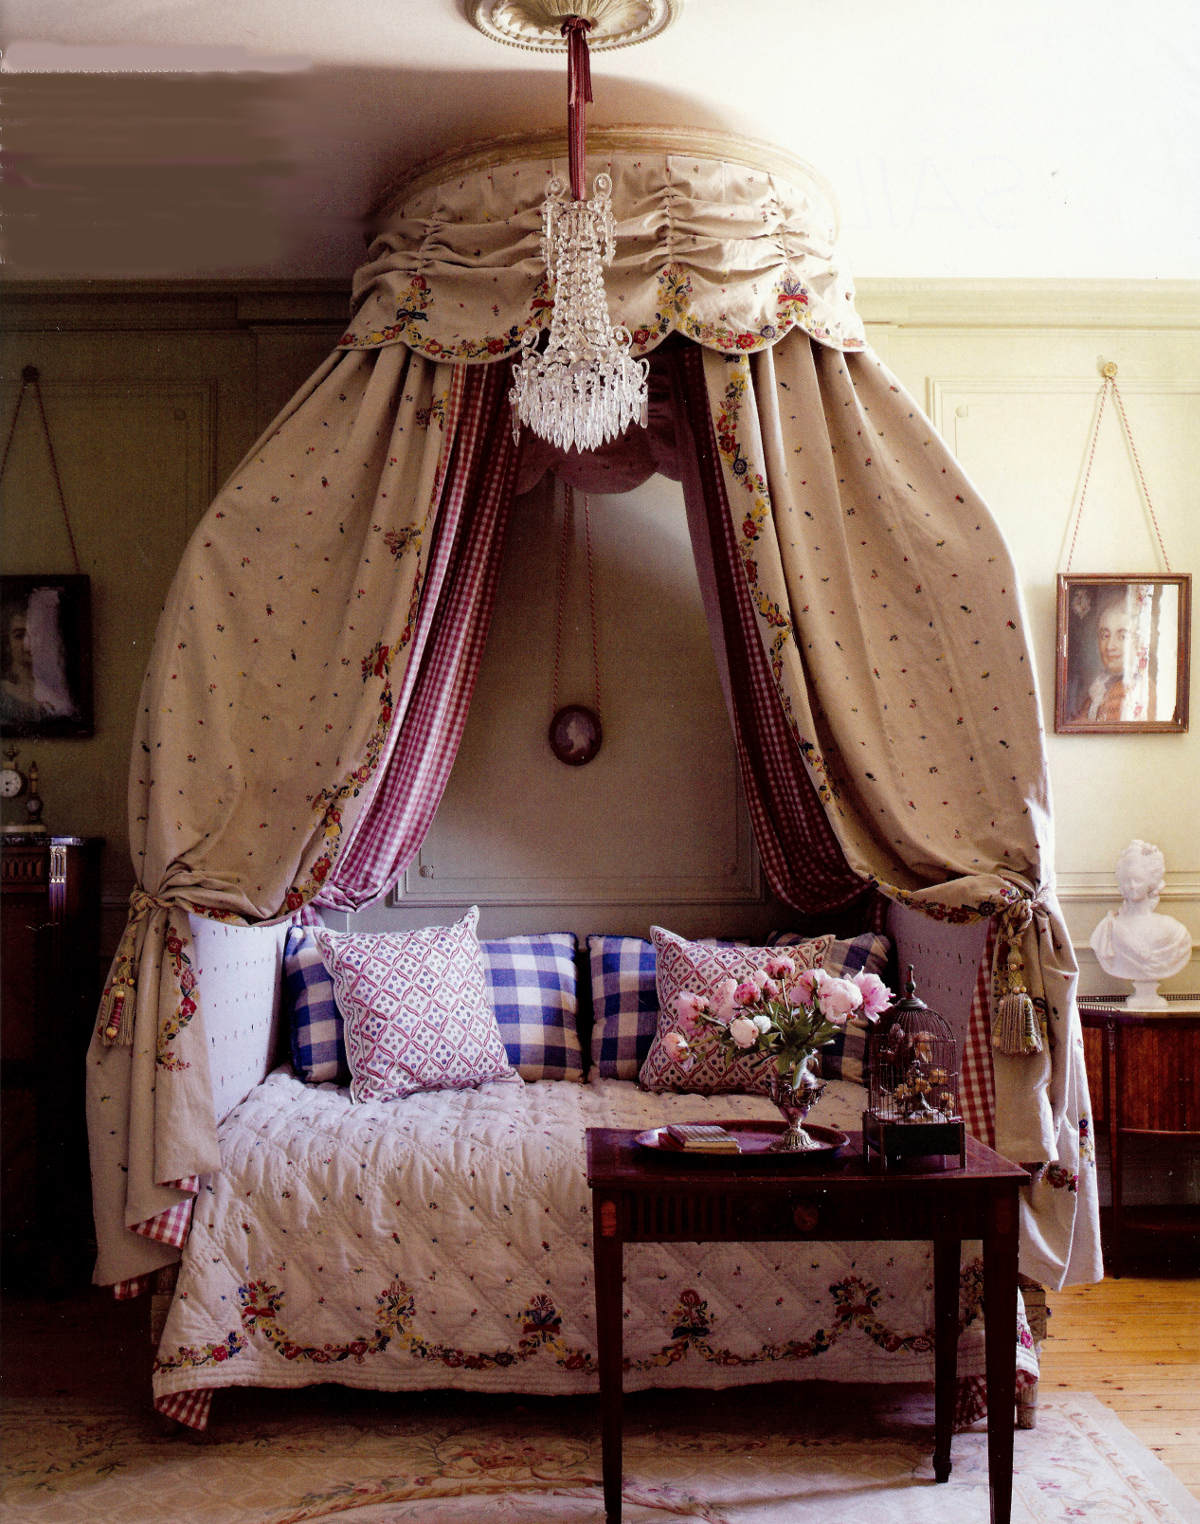 Draped Canopy Beds   Lit A La Polonaise With Custom Embroidered Linen In  The Gustavian